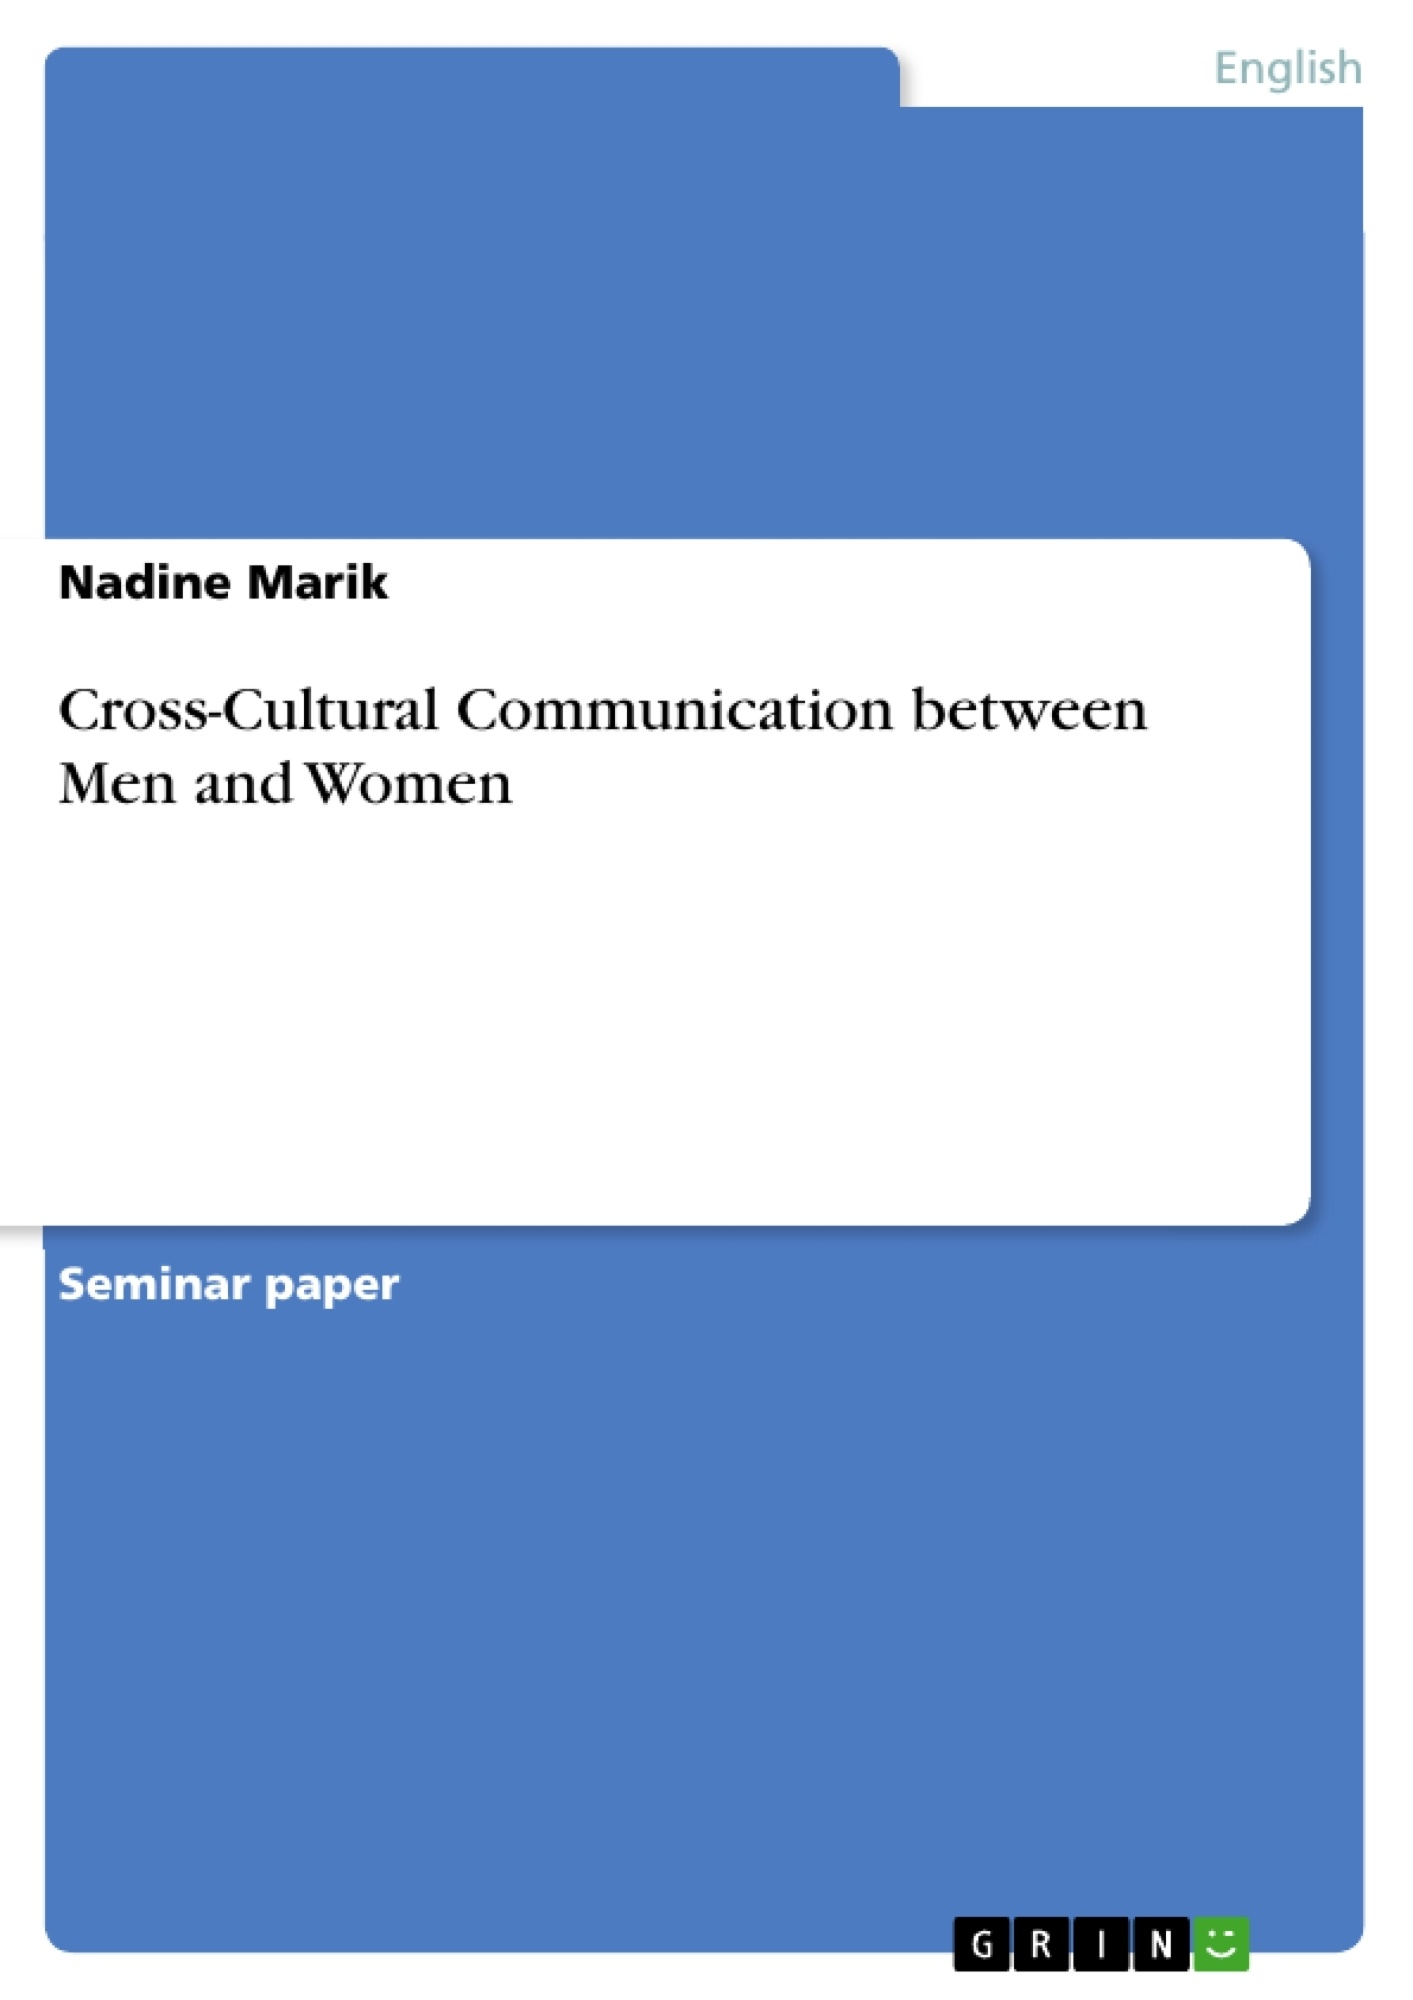 Communication between men and women essay